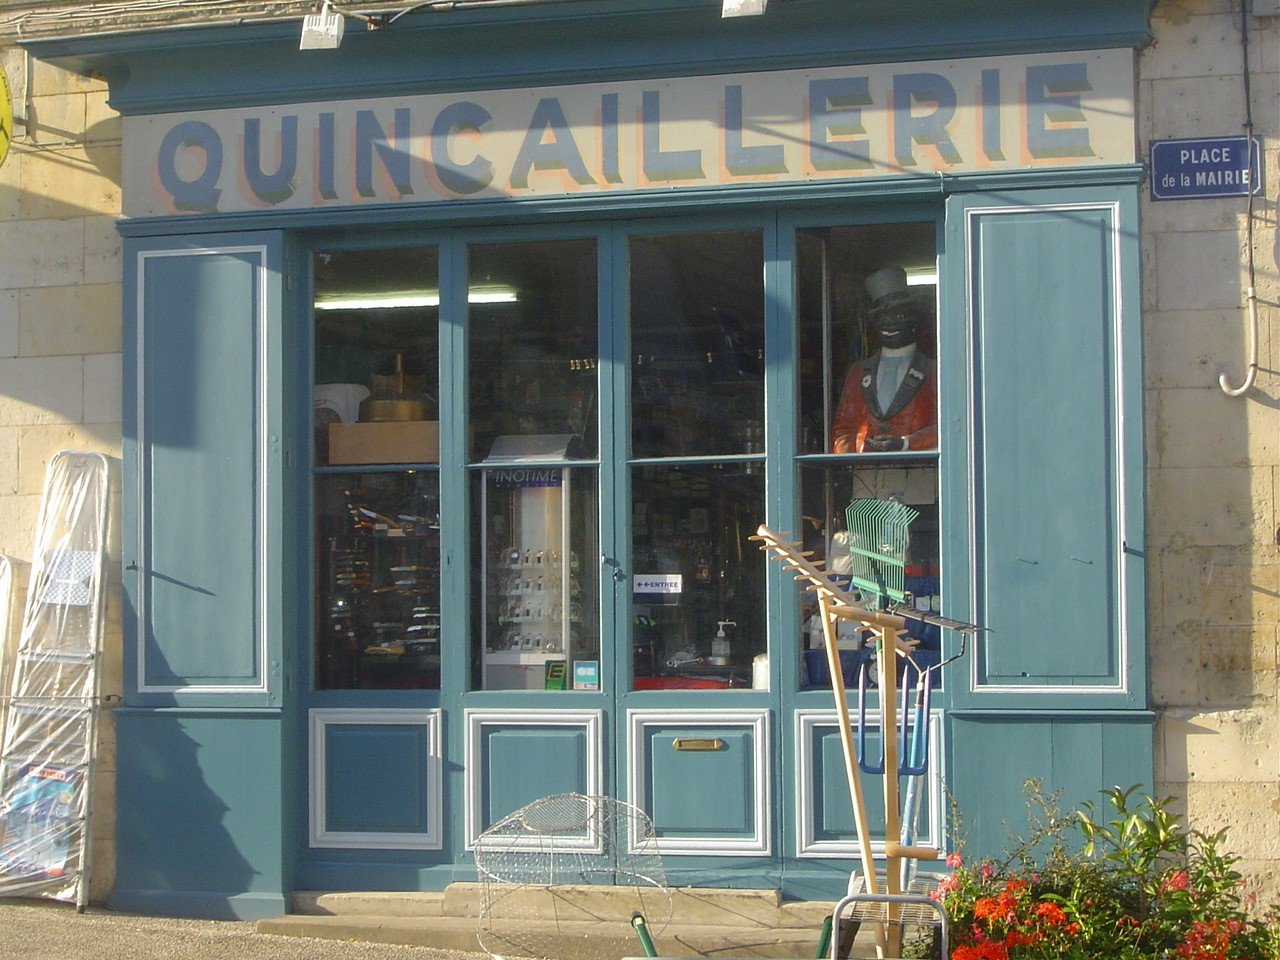 Restoration of 19th century shop-front using linseed paint. Quincaillerie Mallet, Mirambeau, FRANCE.